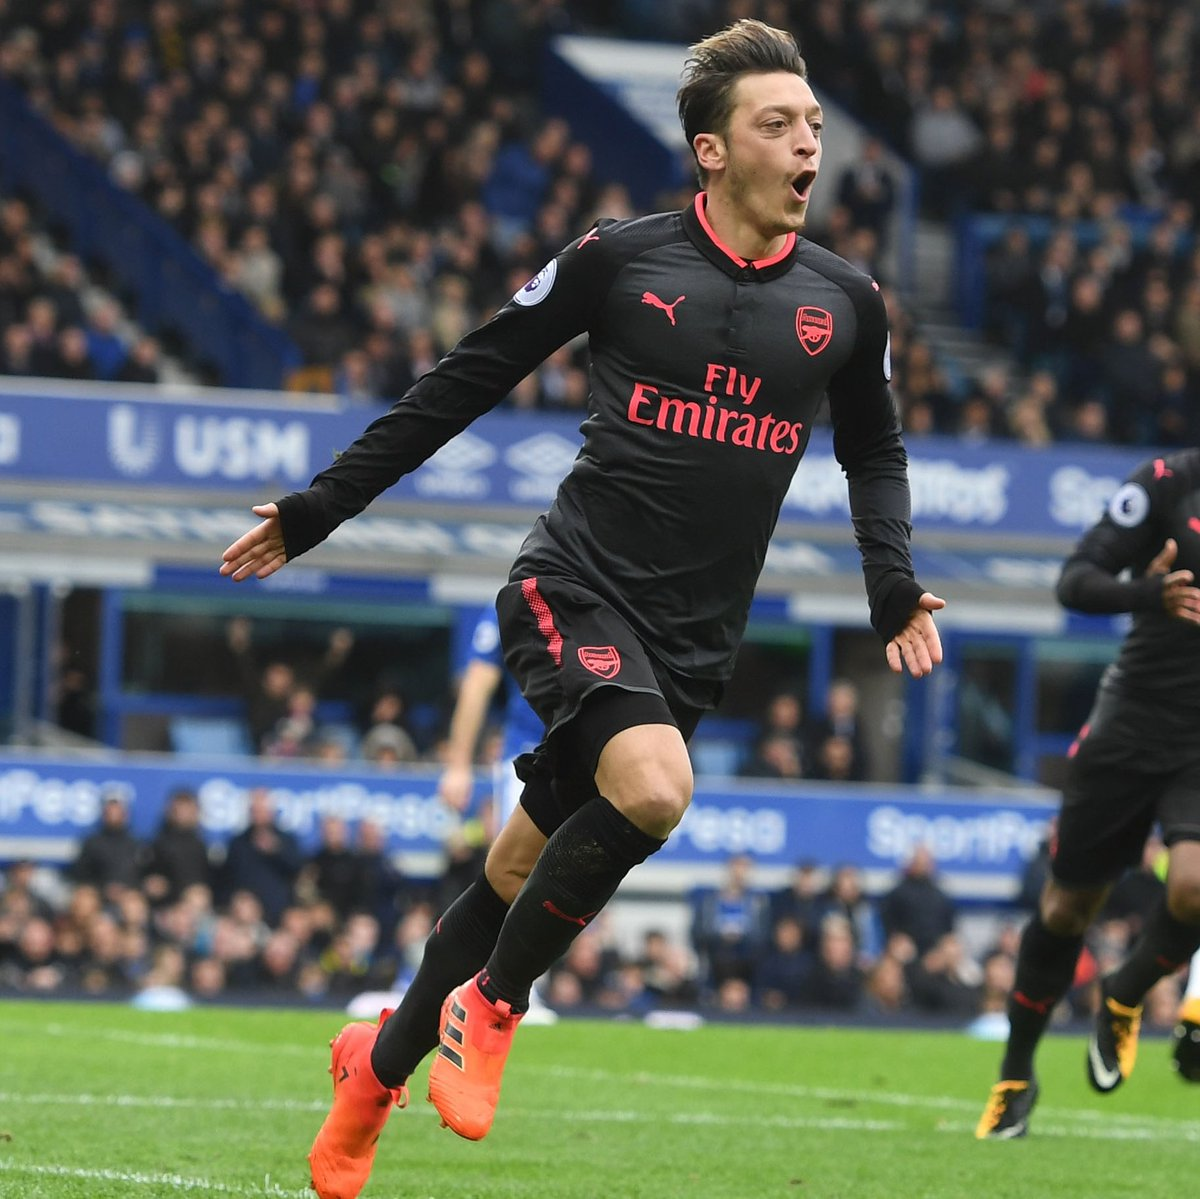 #YaGunnersYa! Impressive away win - back on track 💪🏼😎 #BelieveInYourself #GreatTeamEffort #OneGoal #OneAssist